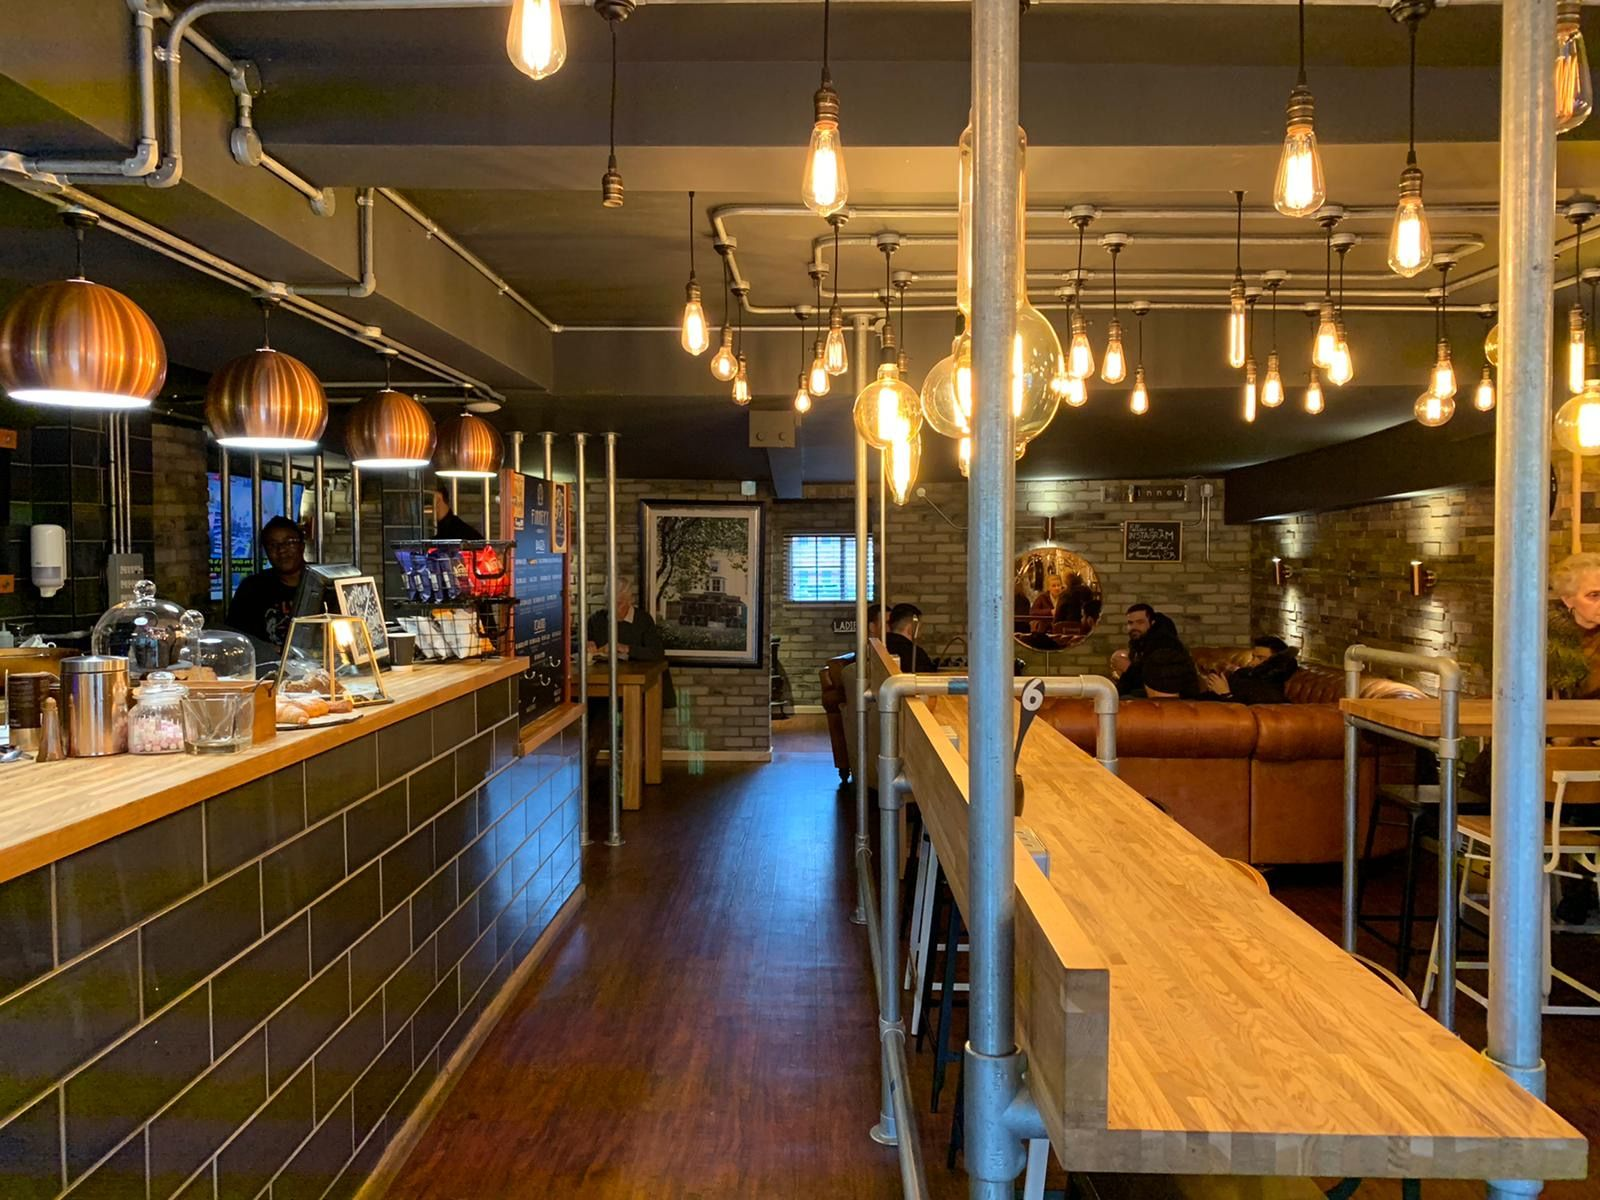 Image may contain: Meal, Food, Cafe, Cafeteria, Hardwood, Plywood, Human, Person, Restaurant, Wood